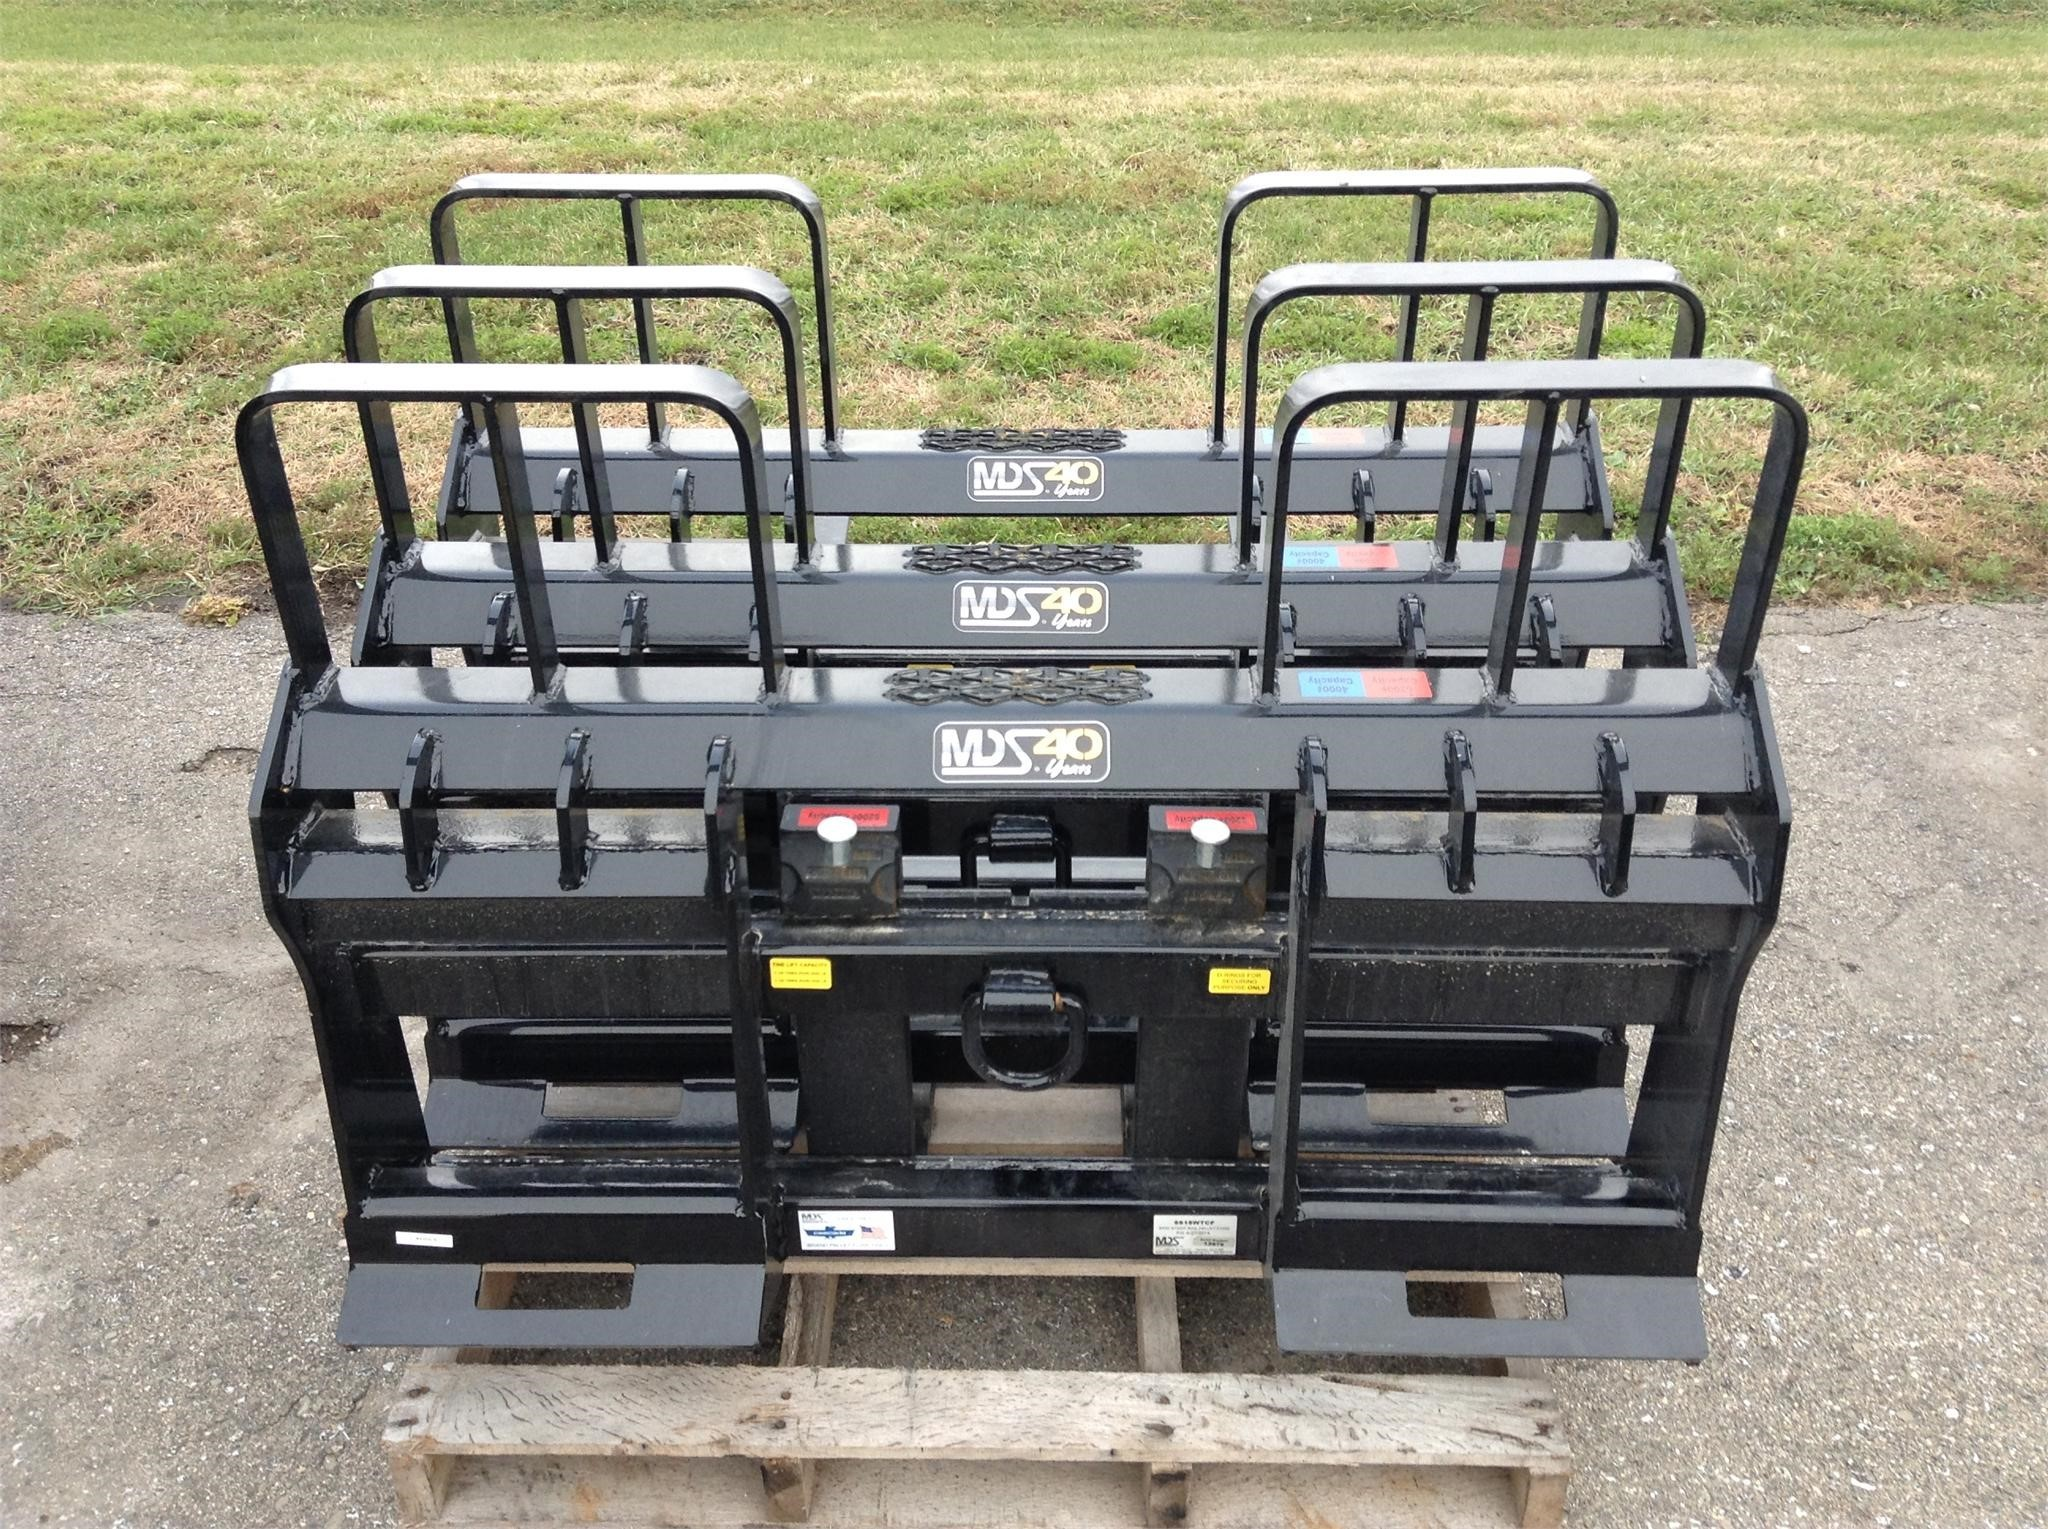 2021 MDS 1248 Loader and Skid Steer Attachment